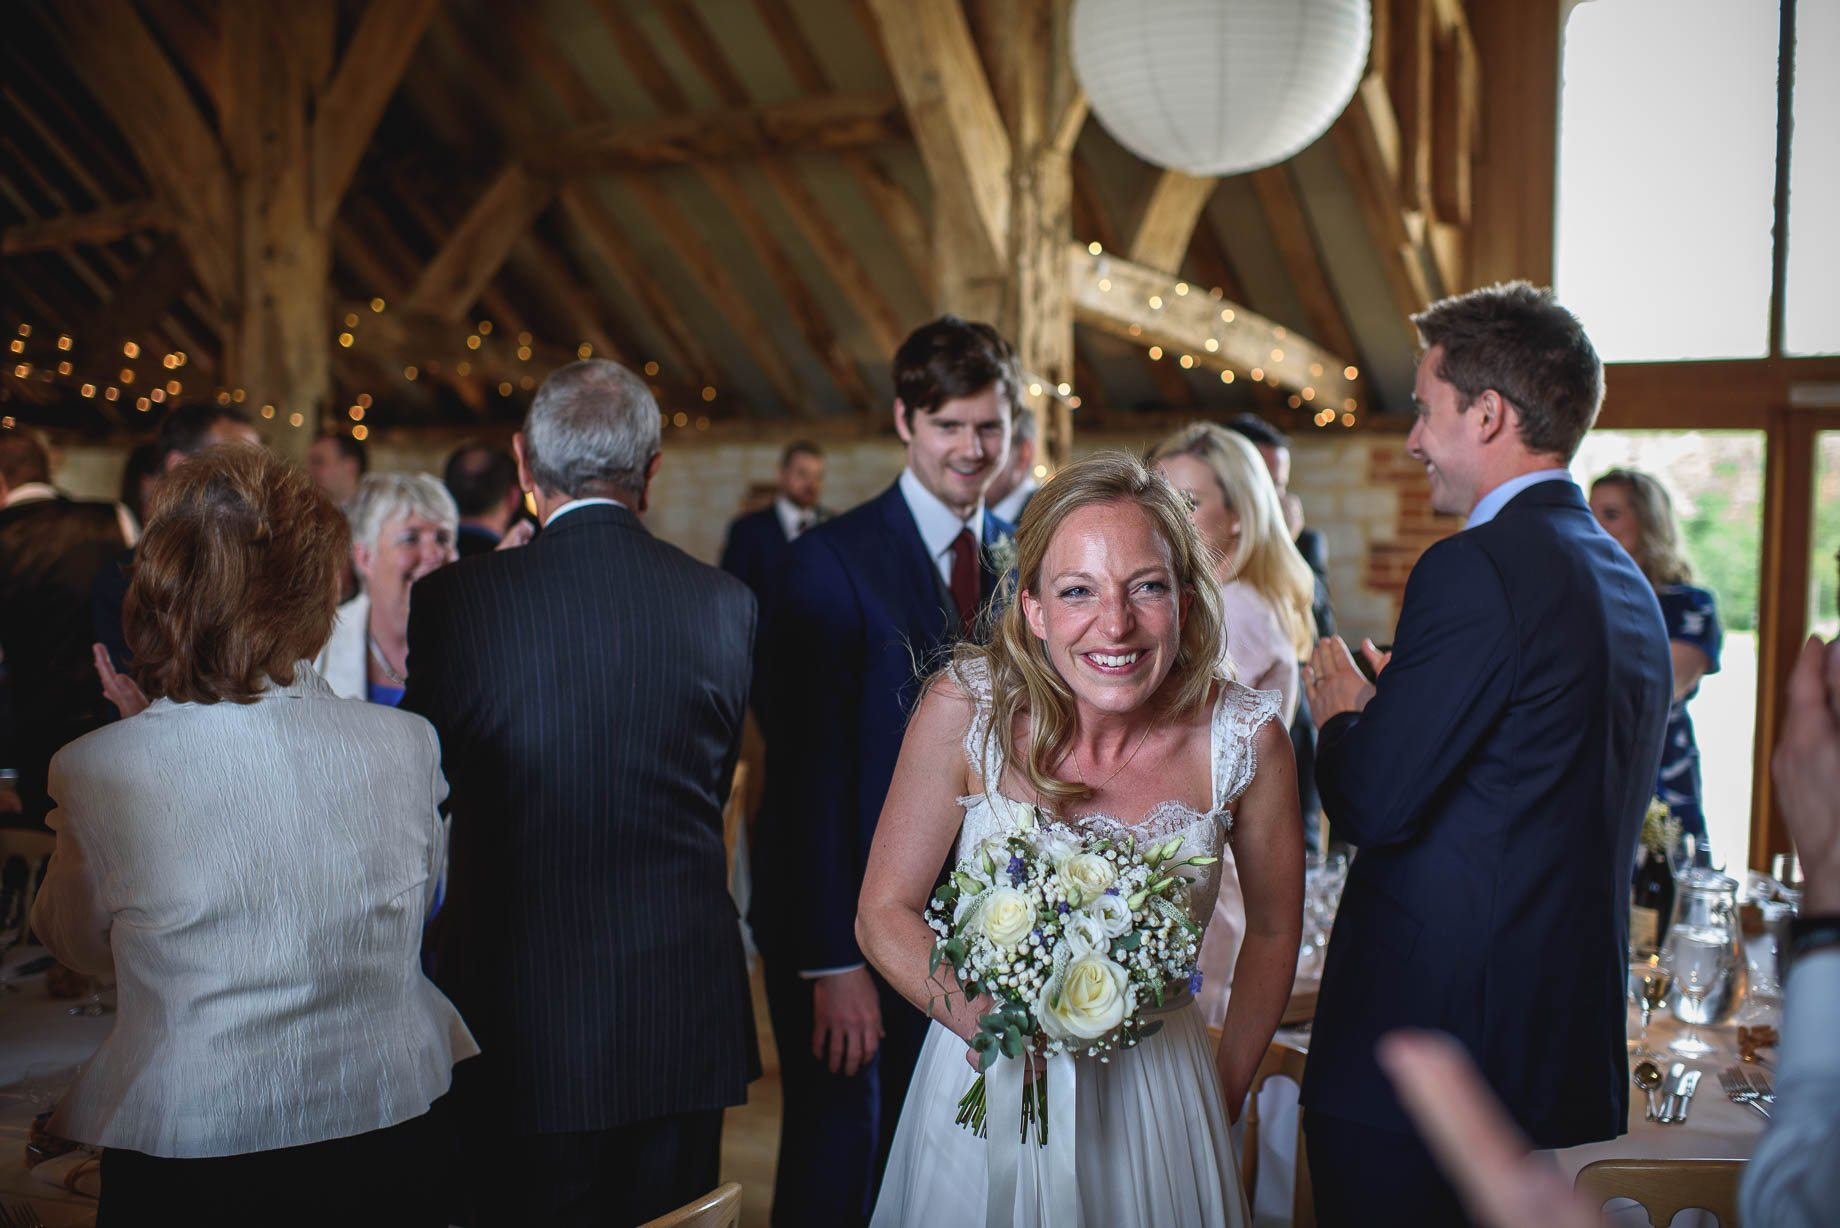 Bury Court Barn wedding photography by Guy Collier - Heather and Pat (113 of 170)